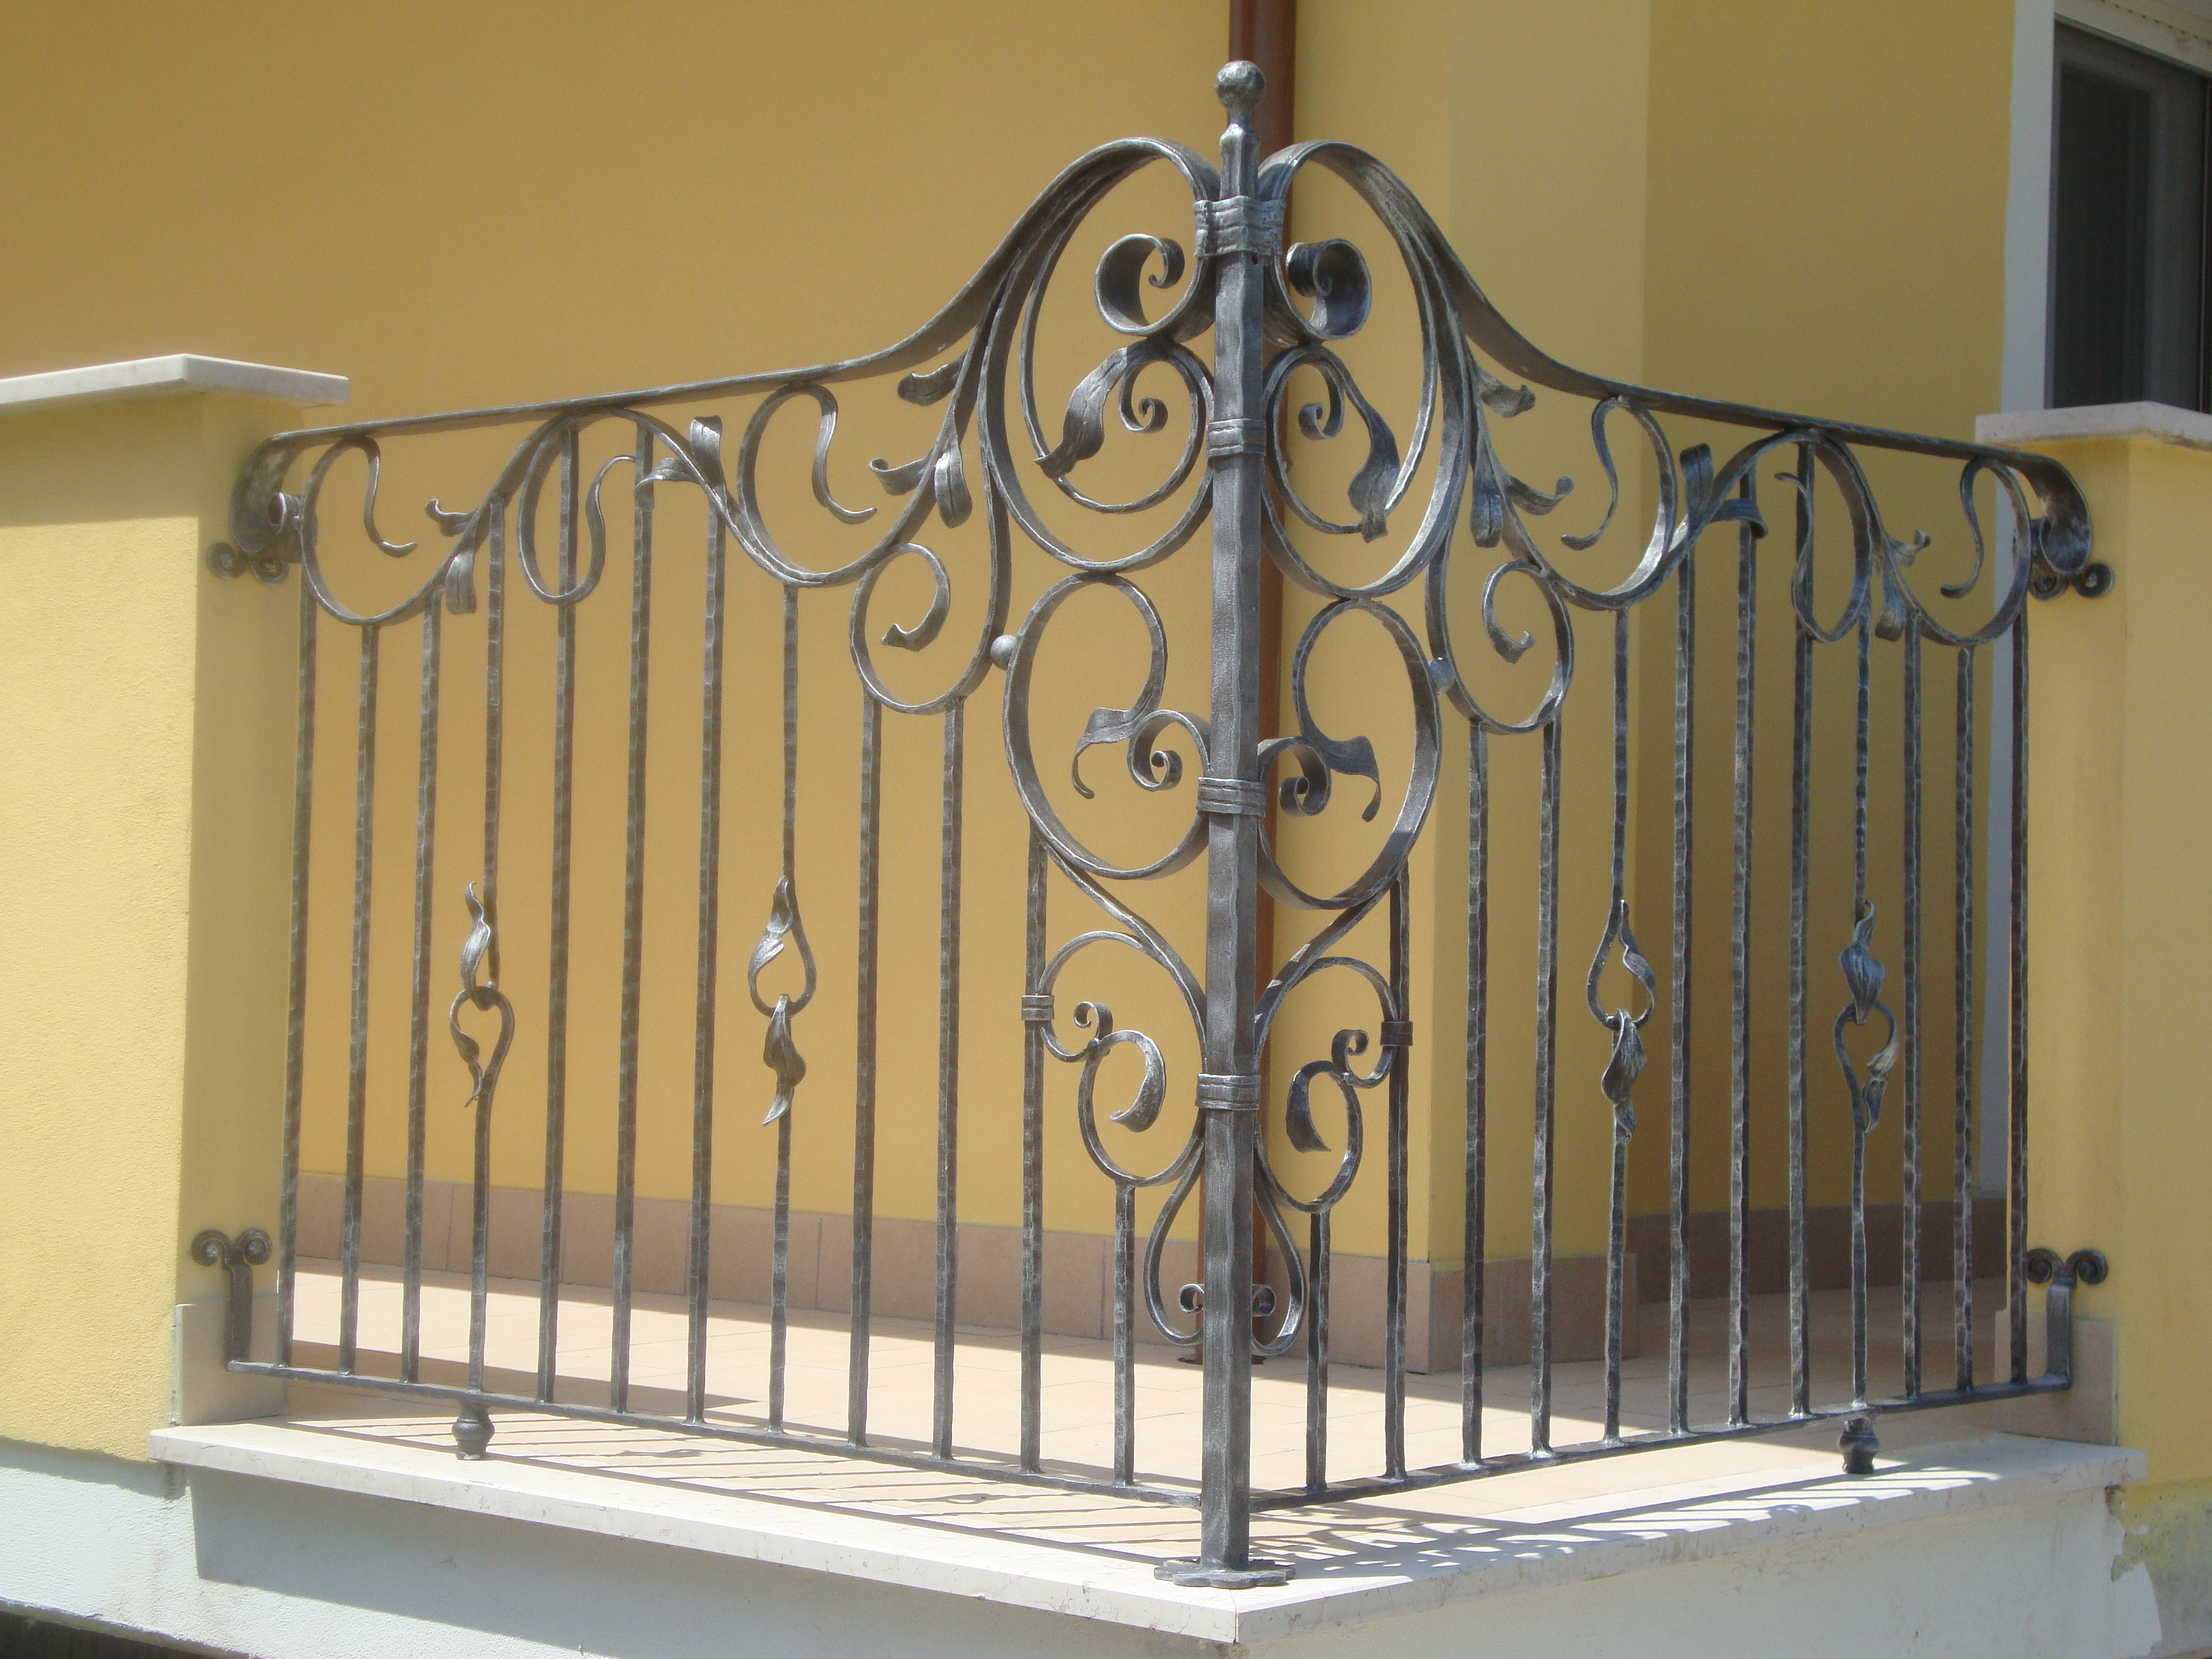 exterior balustrades hand crafted creations wrought iron. Black Bedroom Furniture Sets. Home Design Ideas